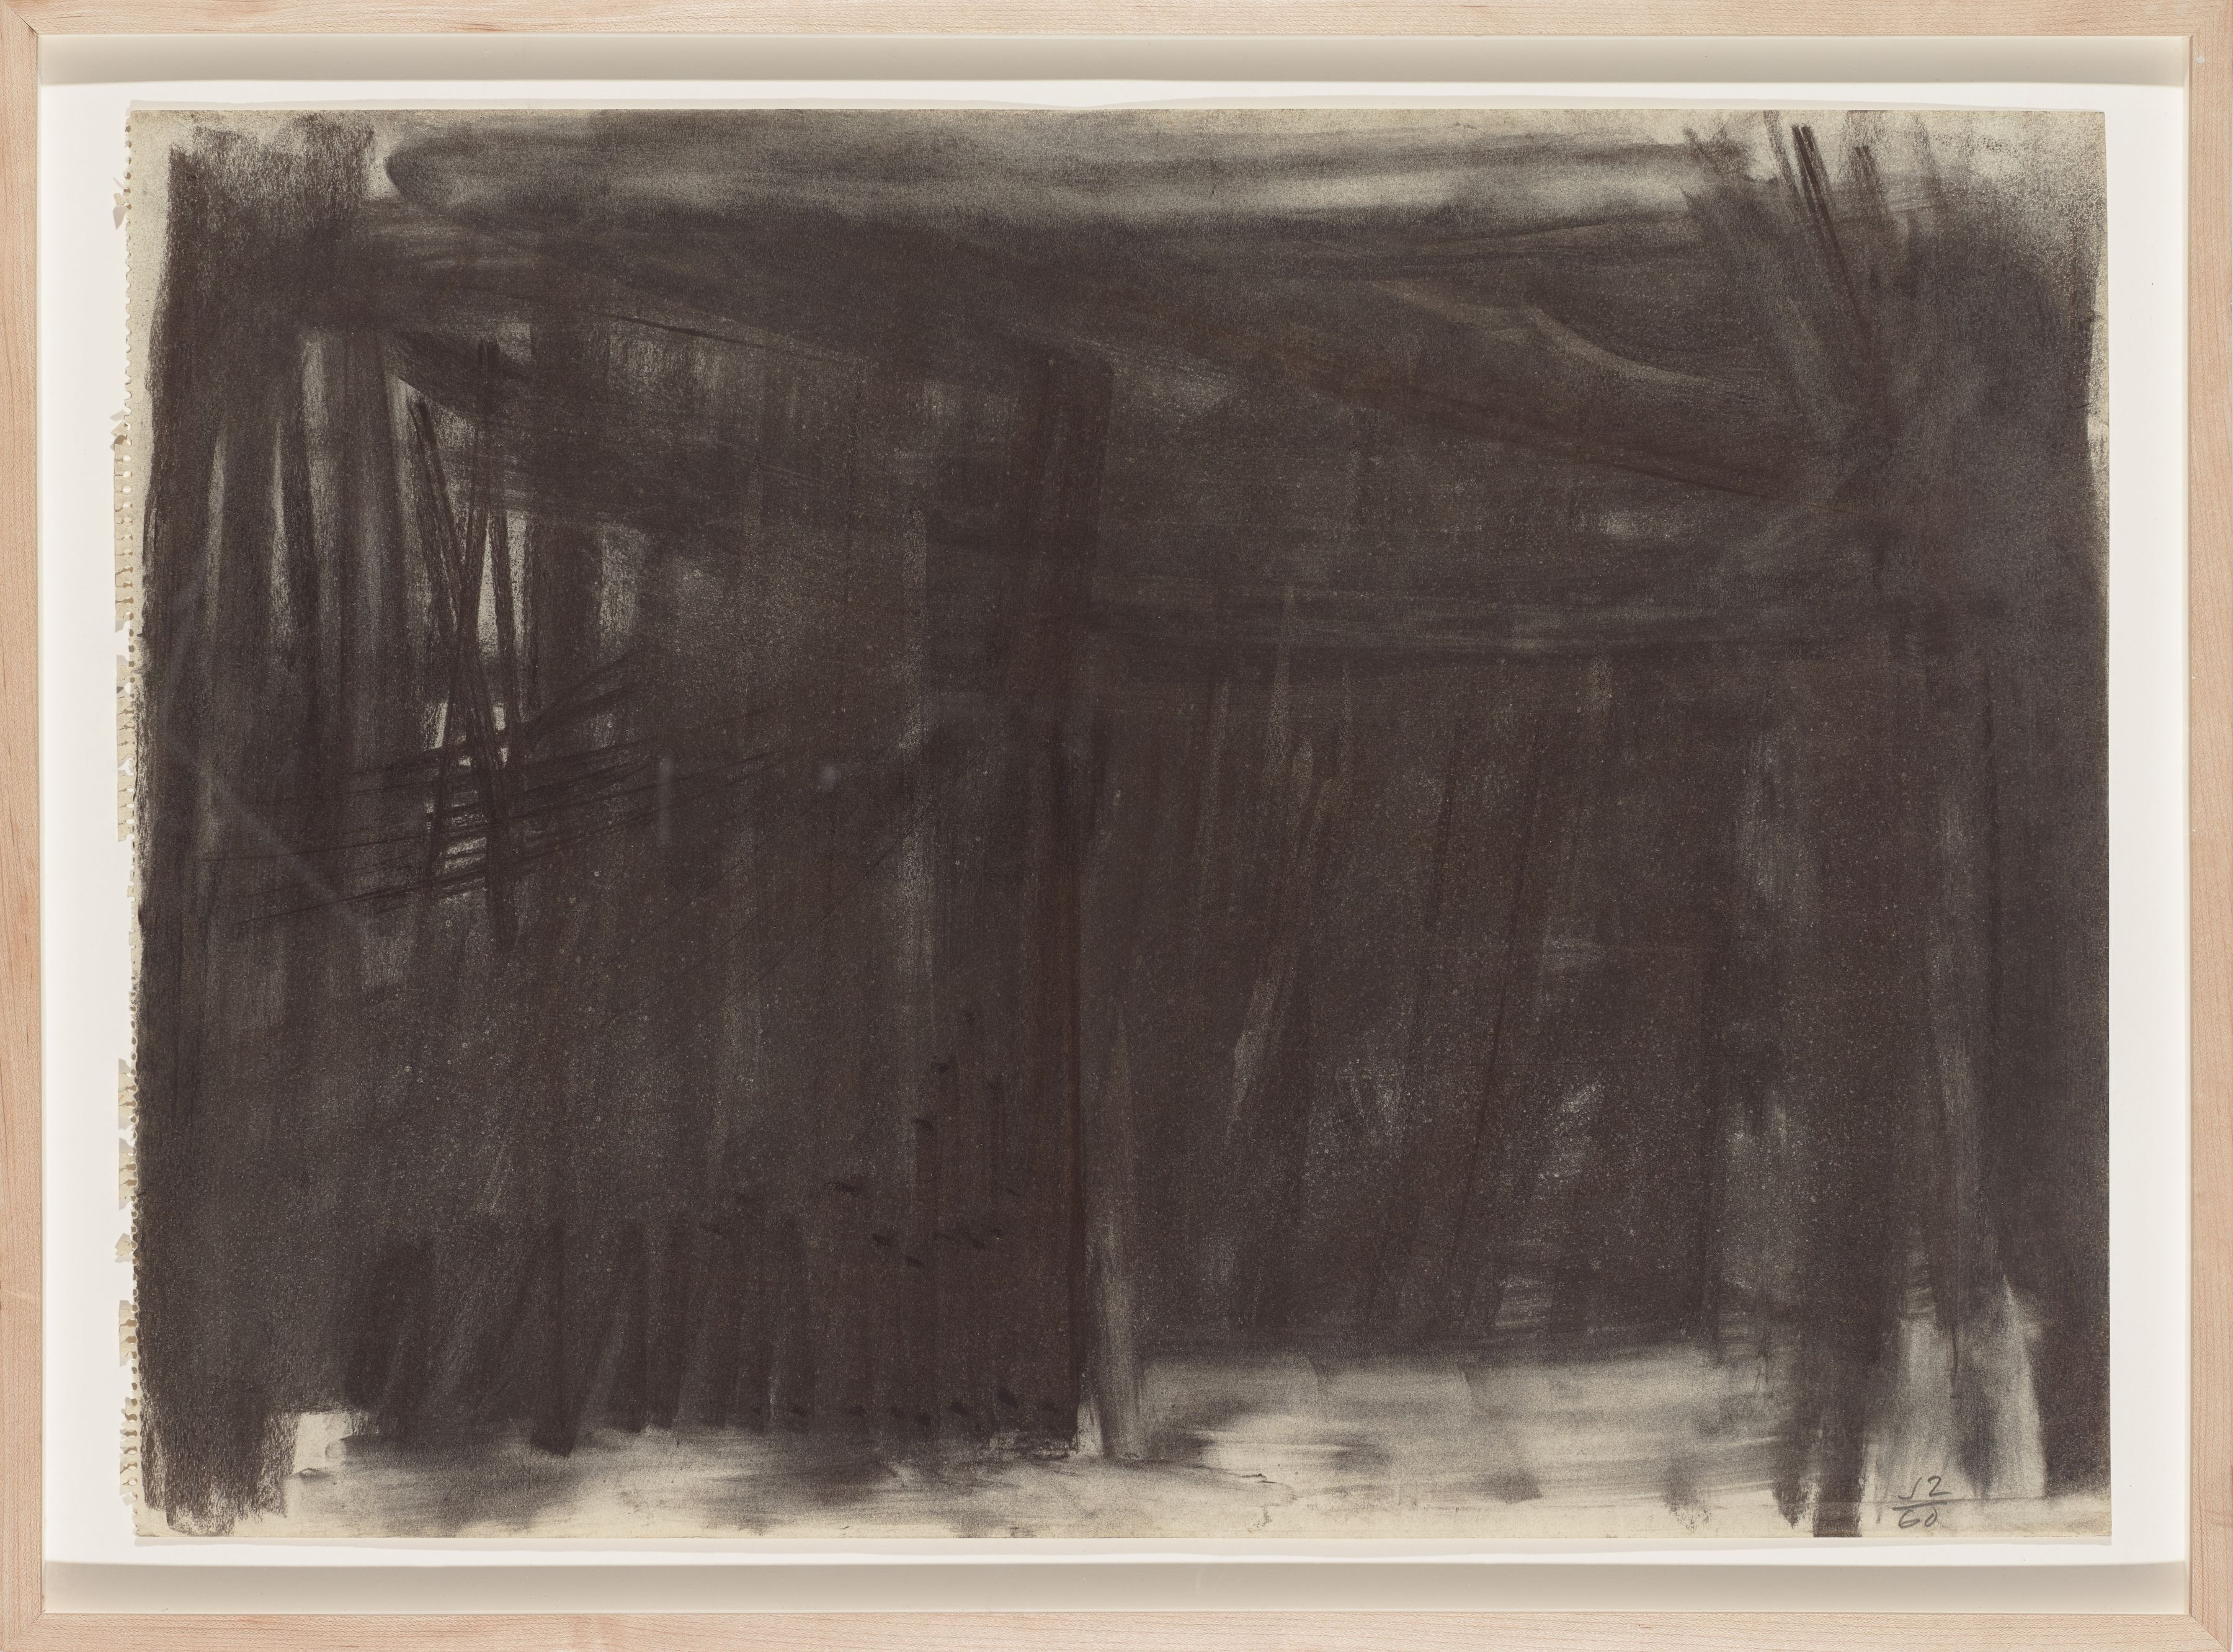 ACD #6, 1960, Charcoal on paper